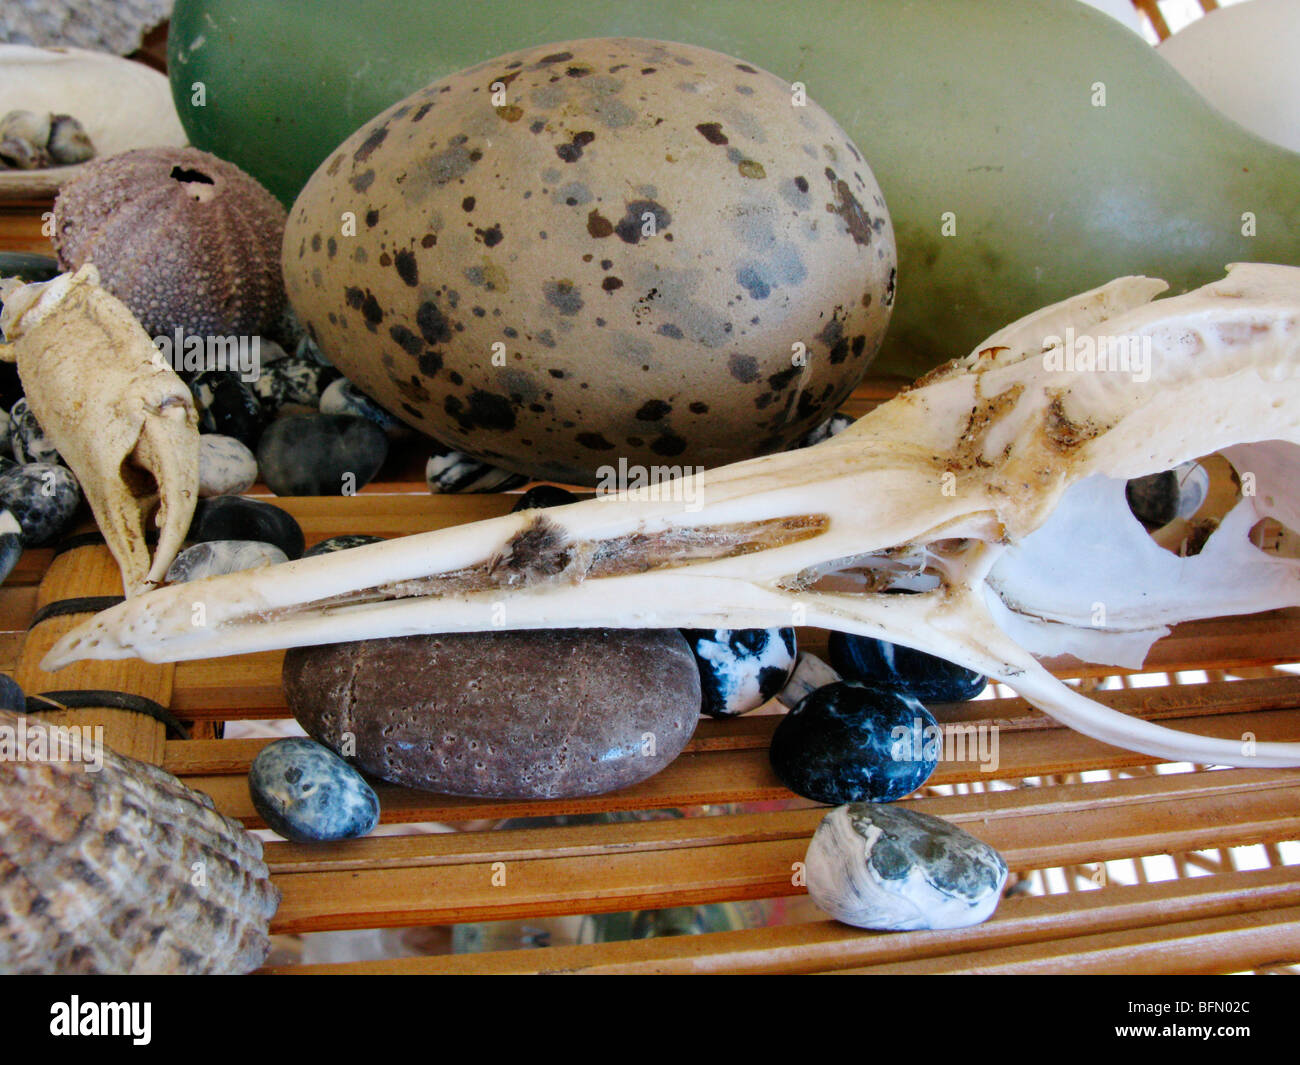 Falkland Islands. Strandline collection - bird skull, egg; crab claw, sea urchin, pebbles and shells. - Stock Image